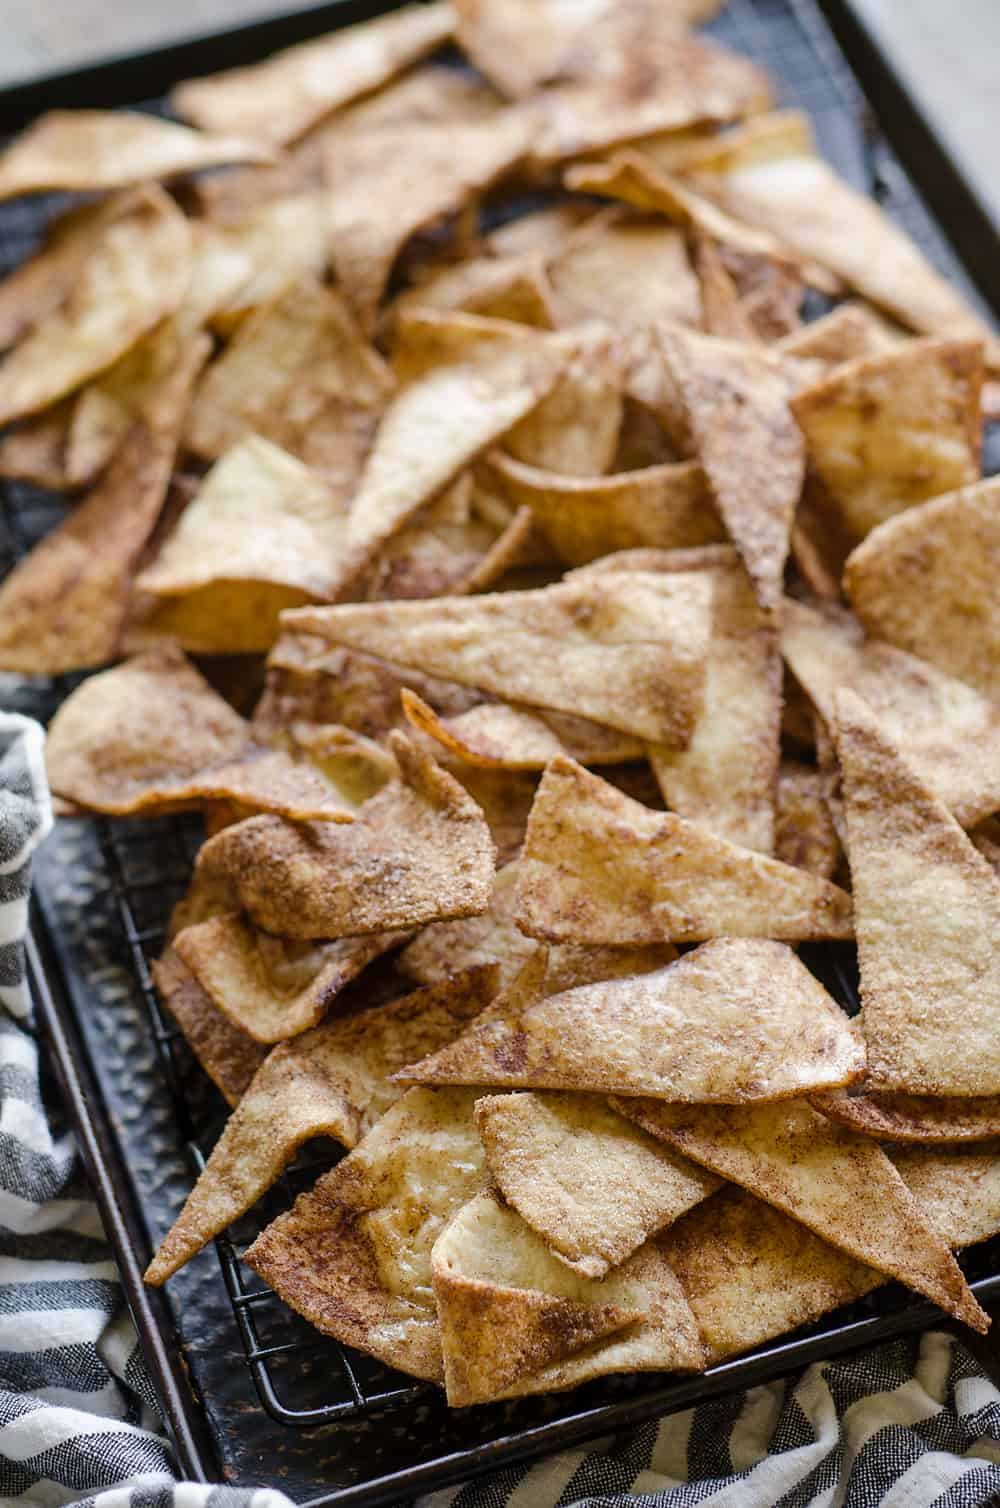 Baked Cinnamon Sugar Tortilla Chips in pan